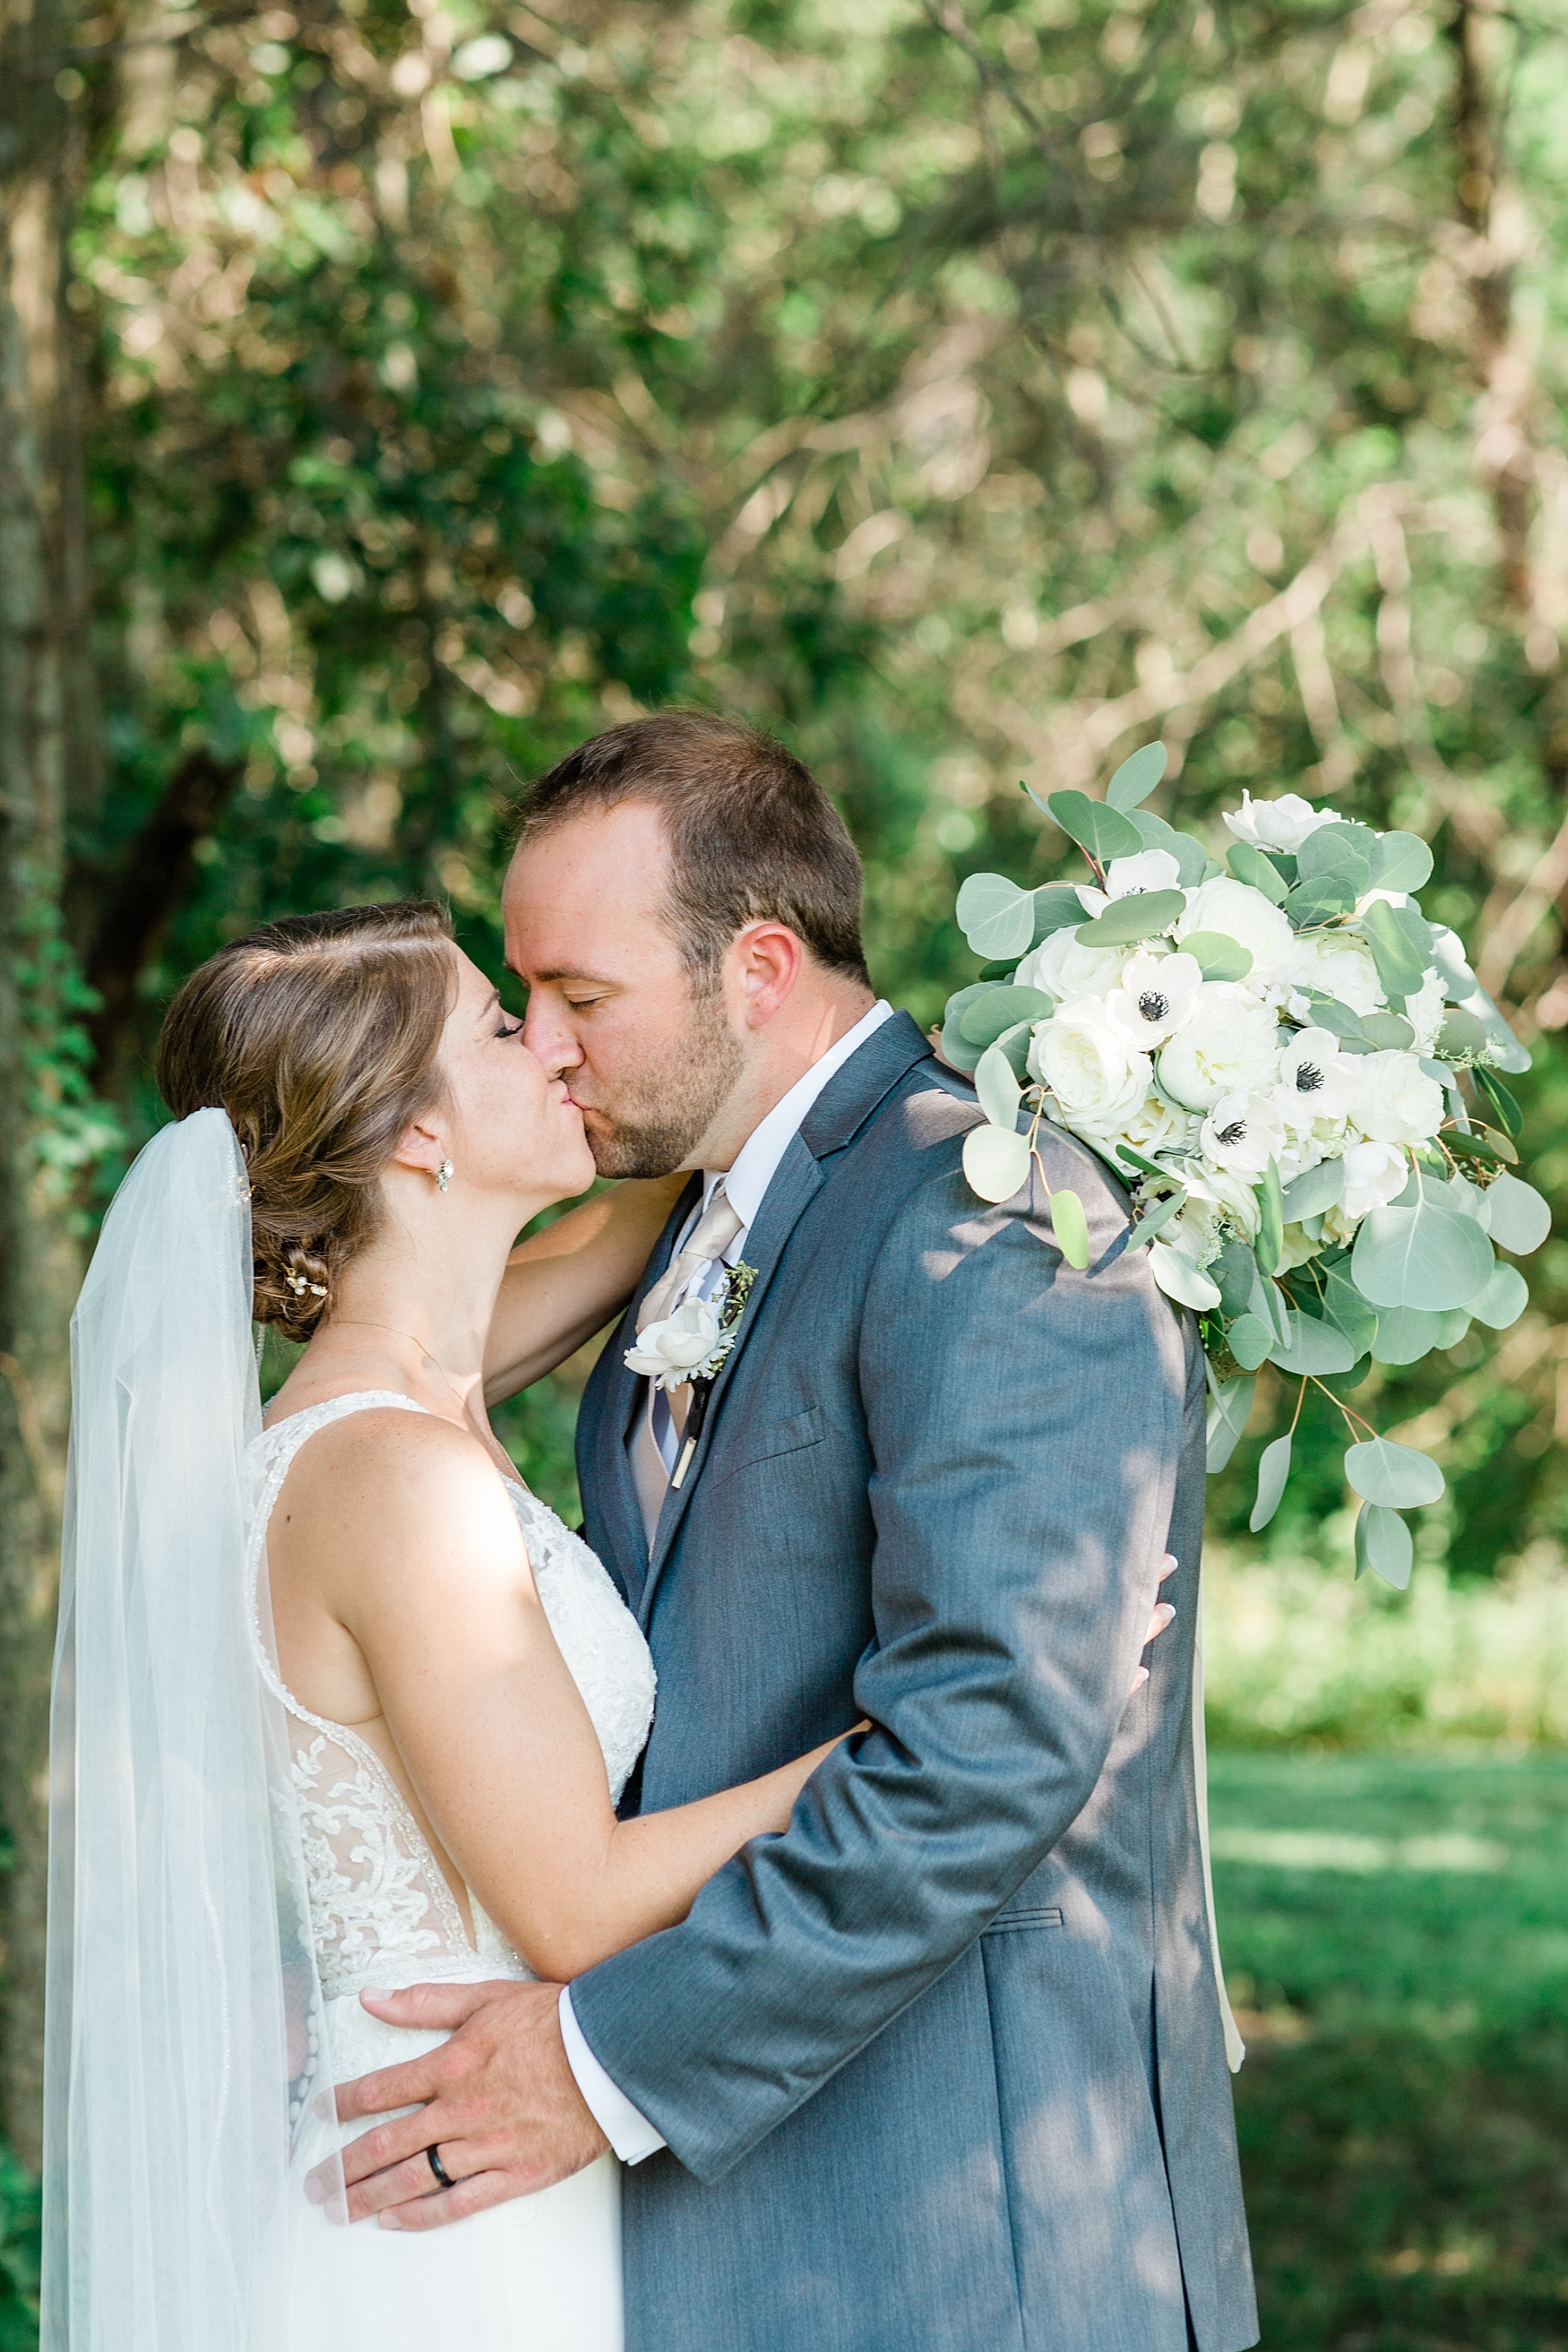 Wedding Ceremony with Confetti Pop at Emerson Fields Venue by Associate Wedding Photographer for Kelsi Kliethermes Photography Best Columbia Missouri and Maui Hawaii Wedding Photographer_0054.jpg